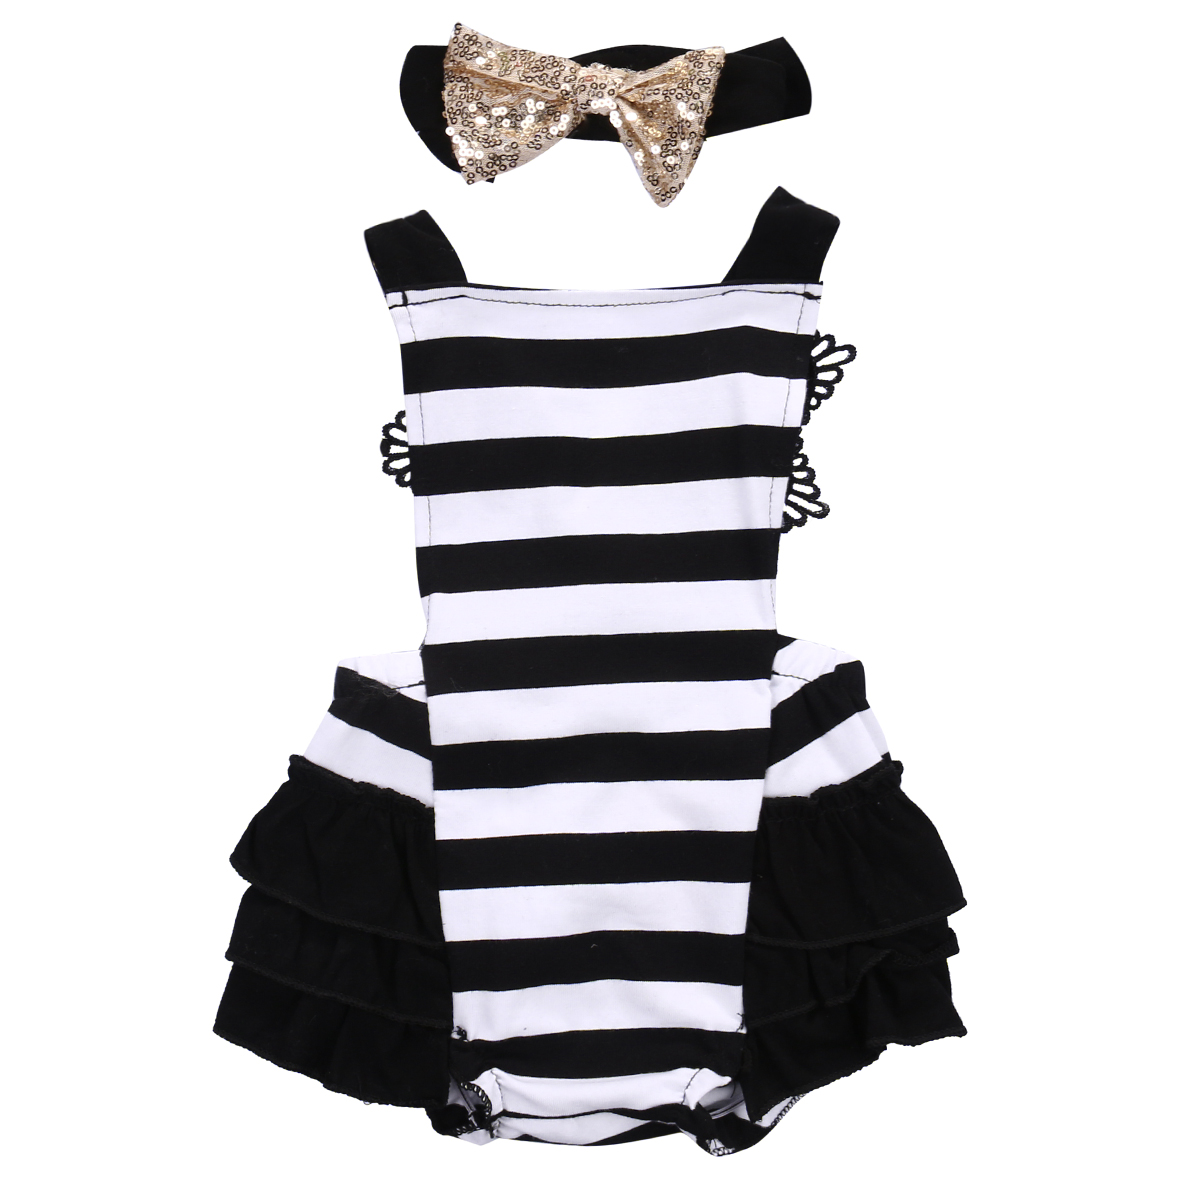 Cute Newborn Baby Girls Clothes Romper Little Princess Tutu Skirted Baby Rompers Jumpsuit Summer Striped Ruffled Costume Sunsuit summer newborn baby rompers ruffle baby girl clothes princess baby girls romper with headband costume overalls baby clothes